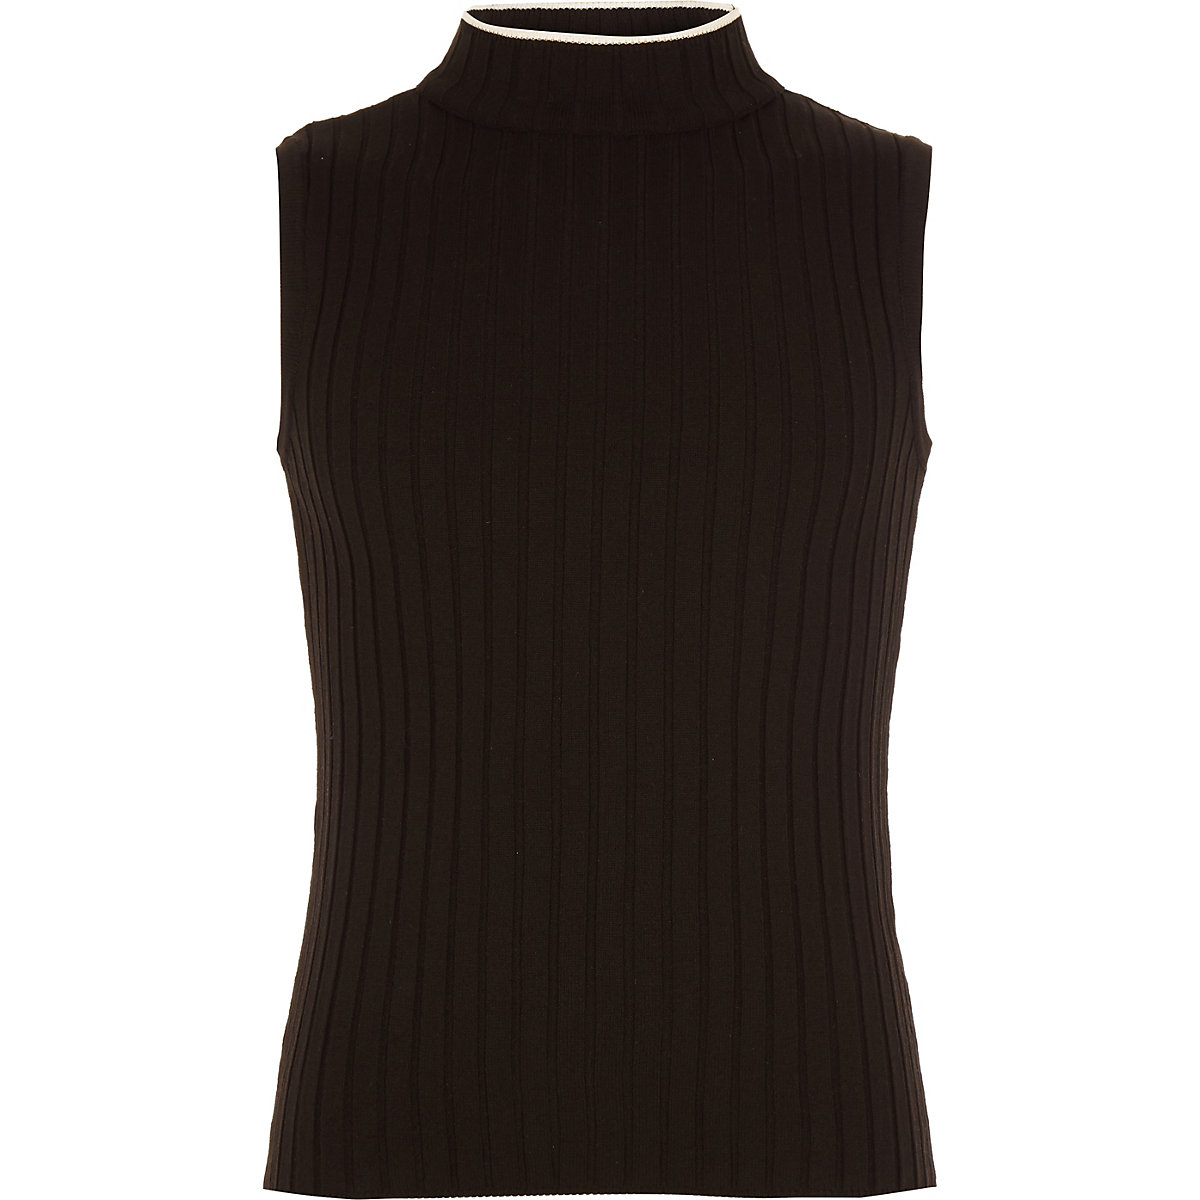 Girls black rib turtle neck tank top